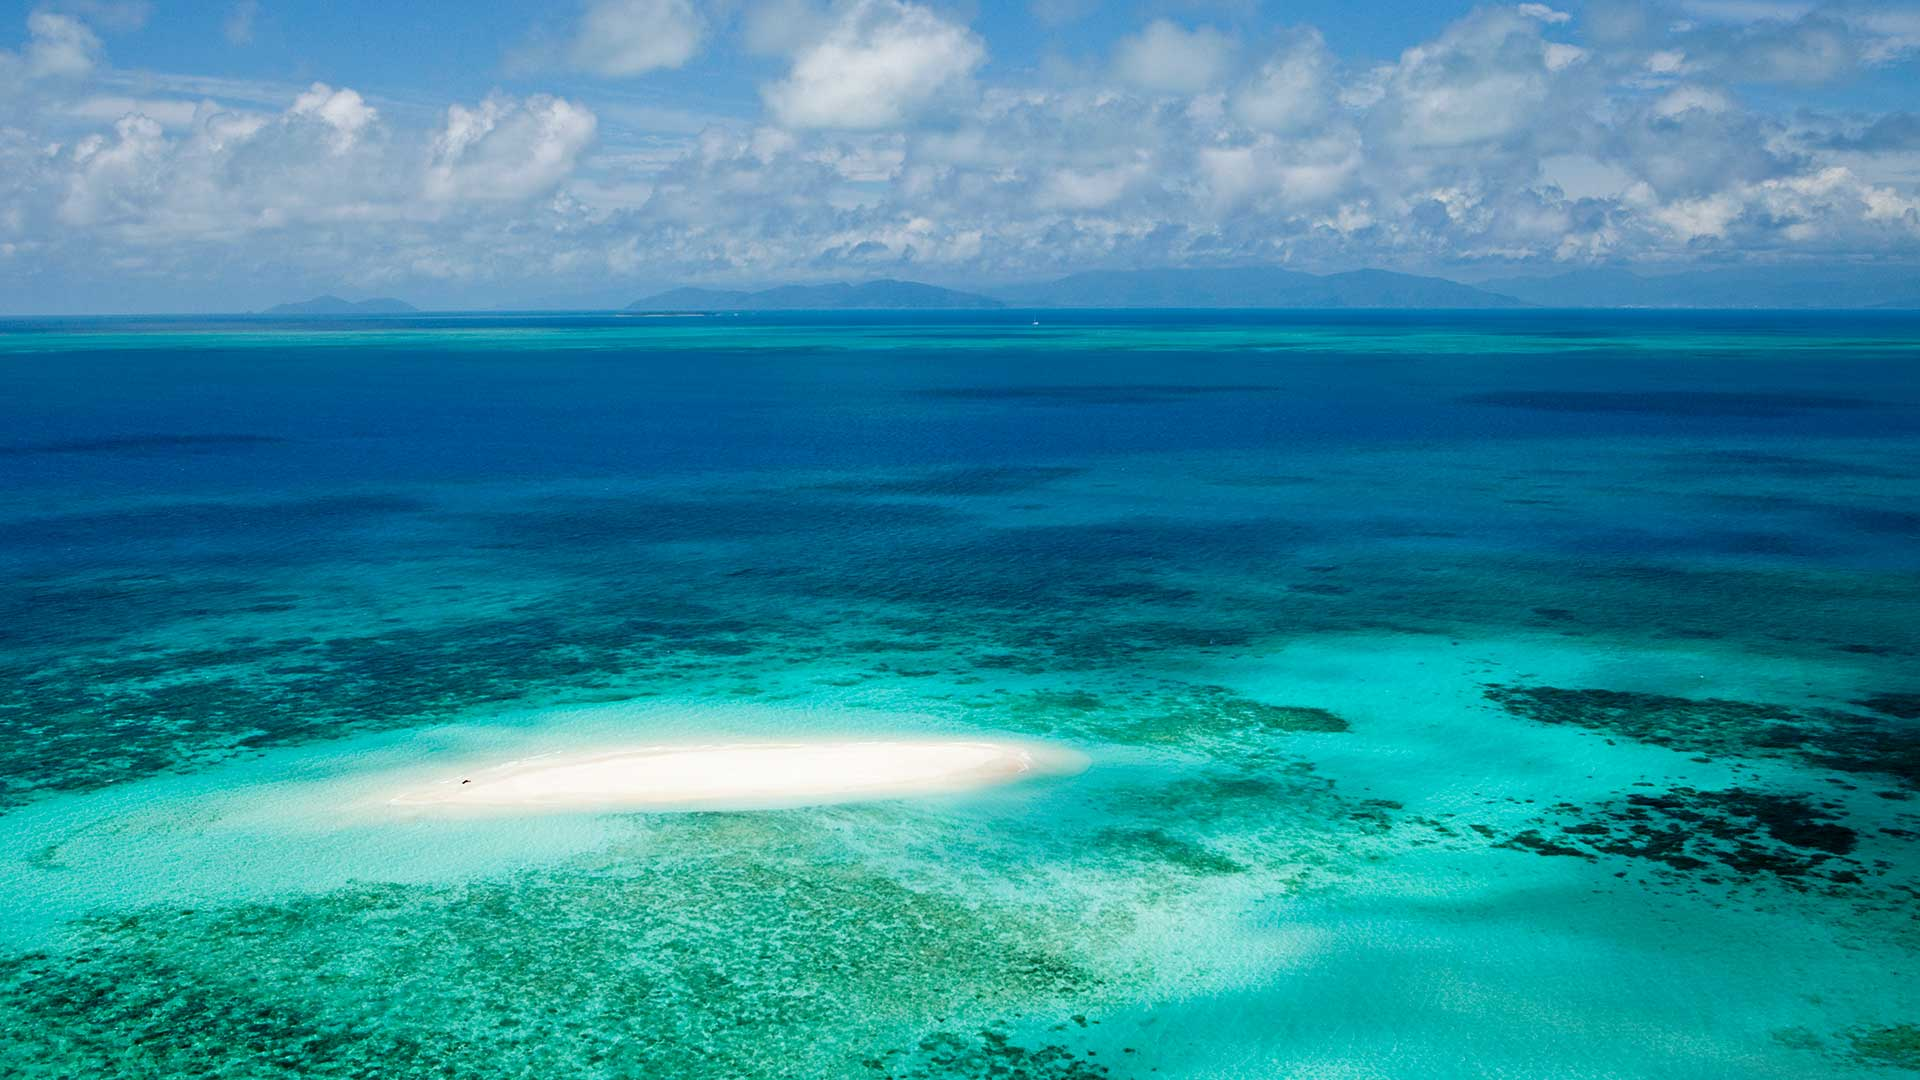 Aerial view of Vlassof Cay in Great Barrier Reef Marine Park